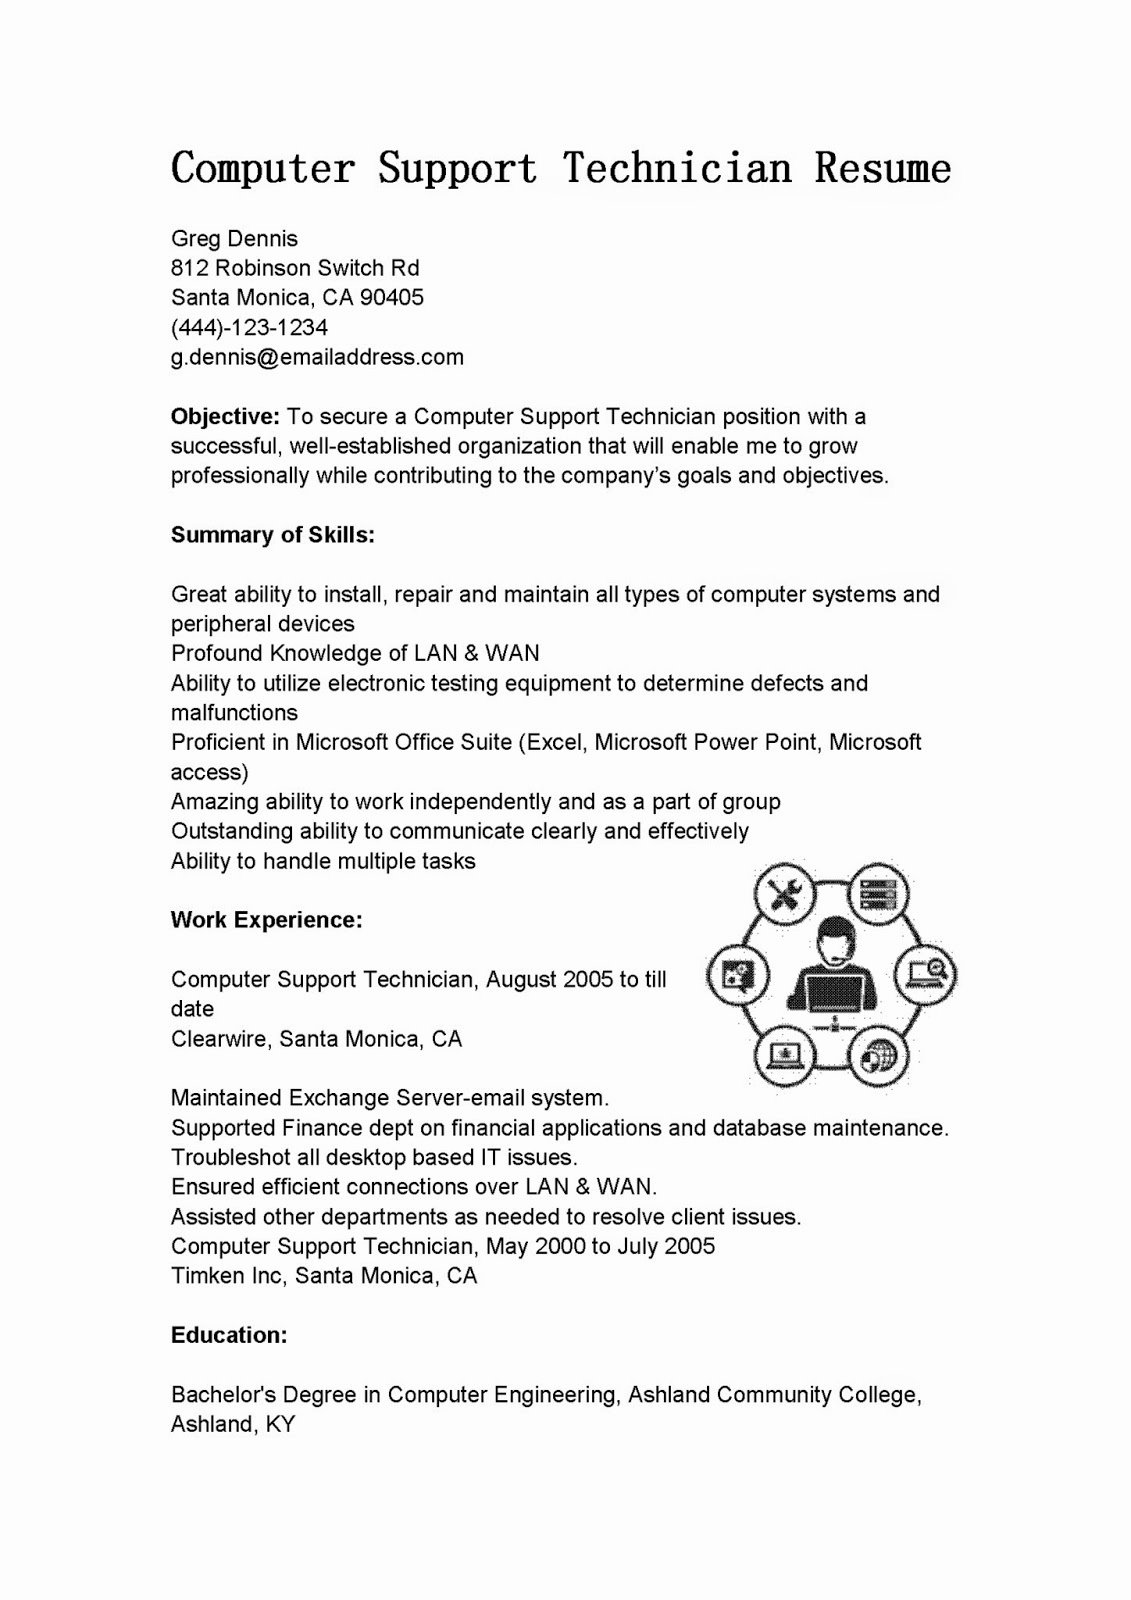 Resume Samples Puter Support Technician Resume Sample